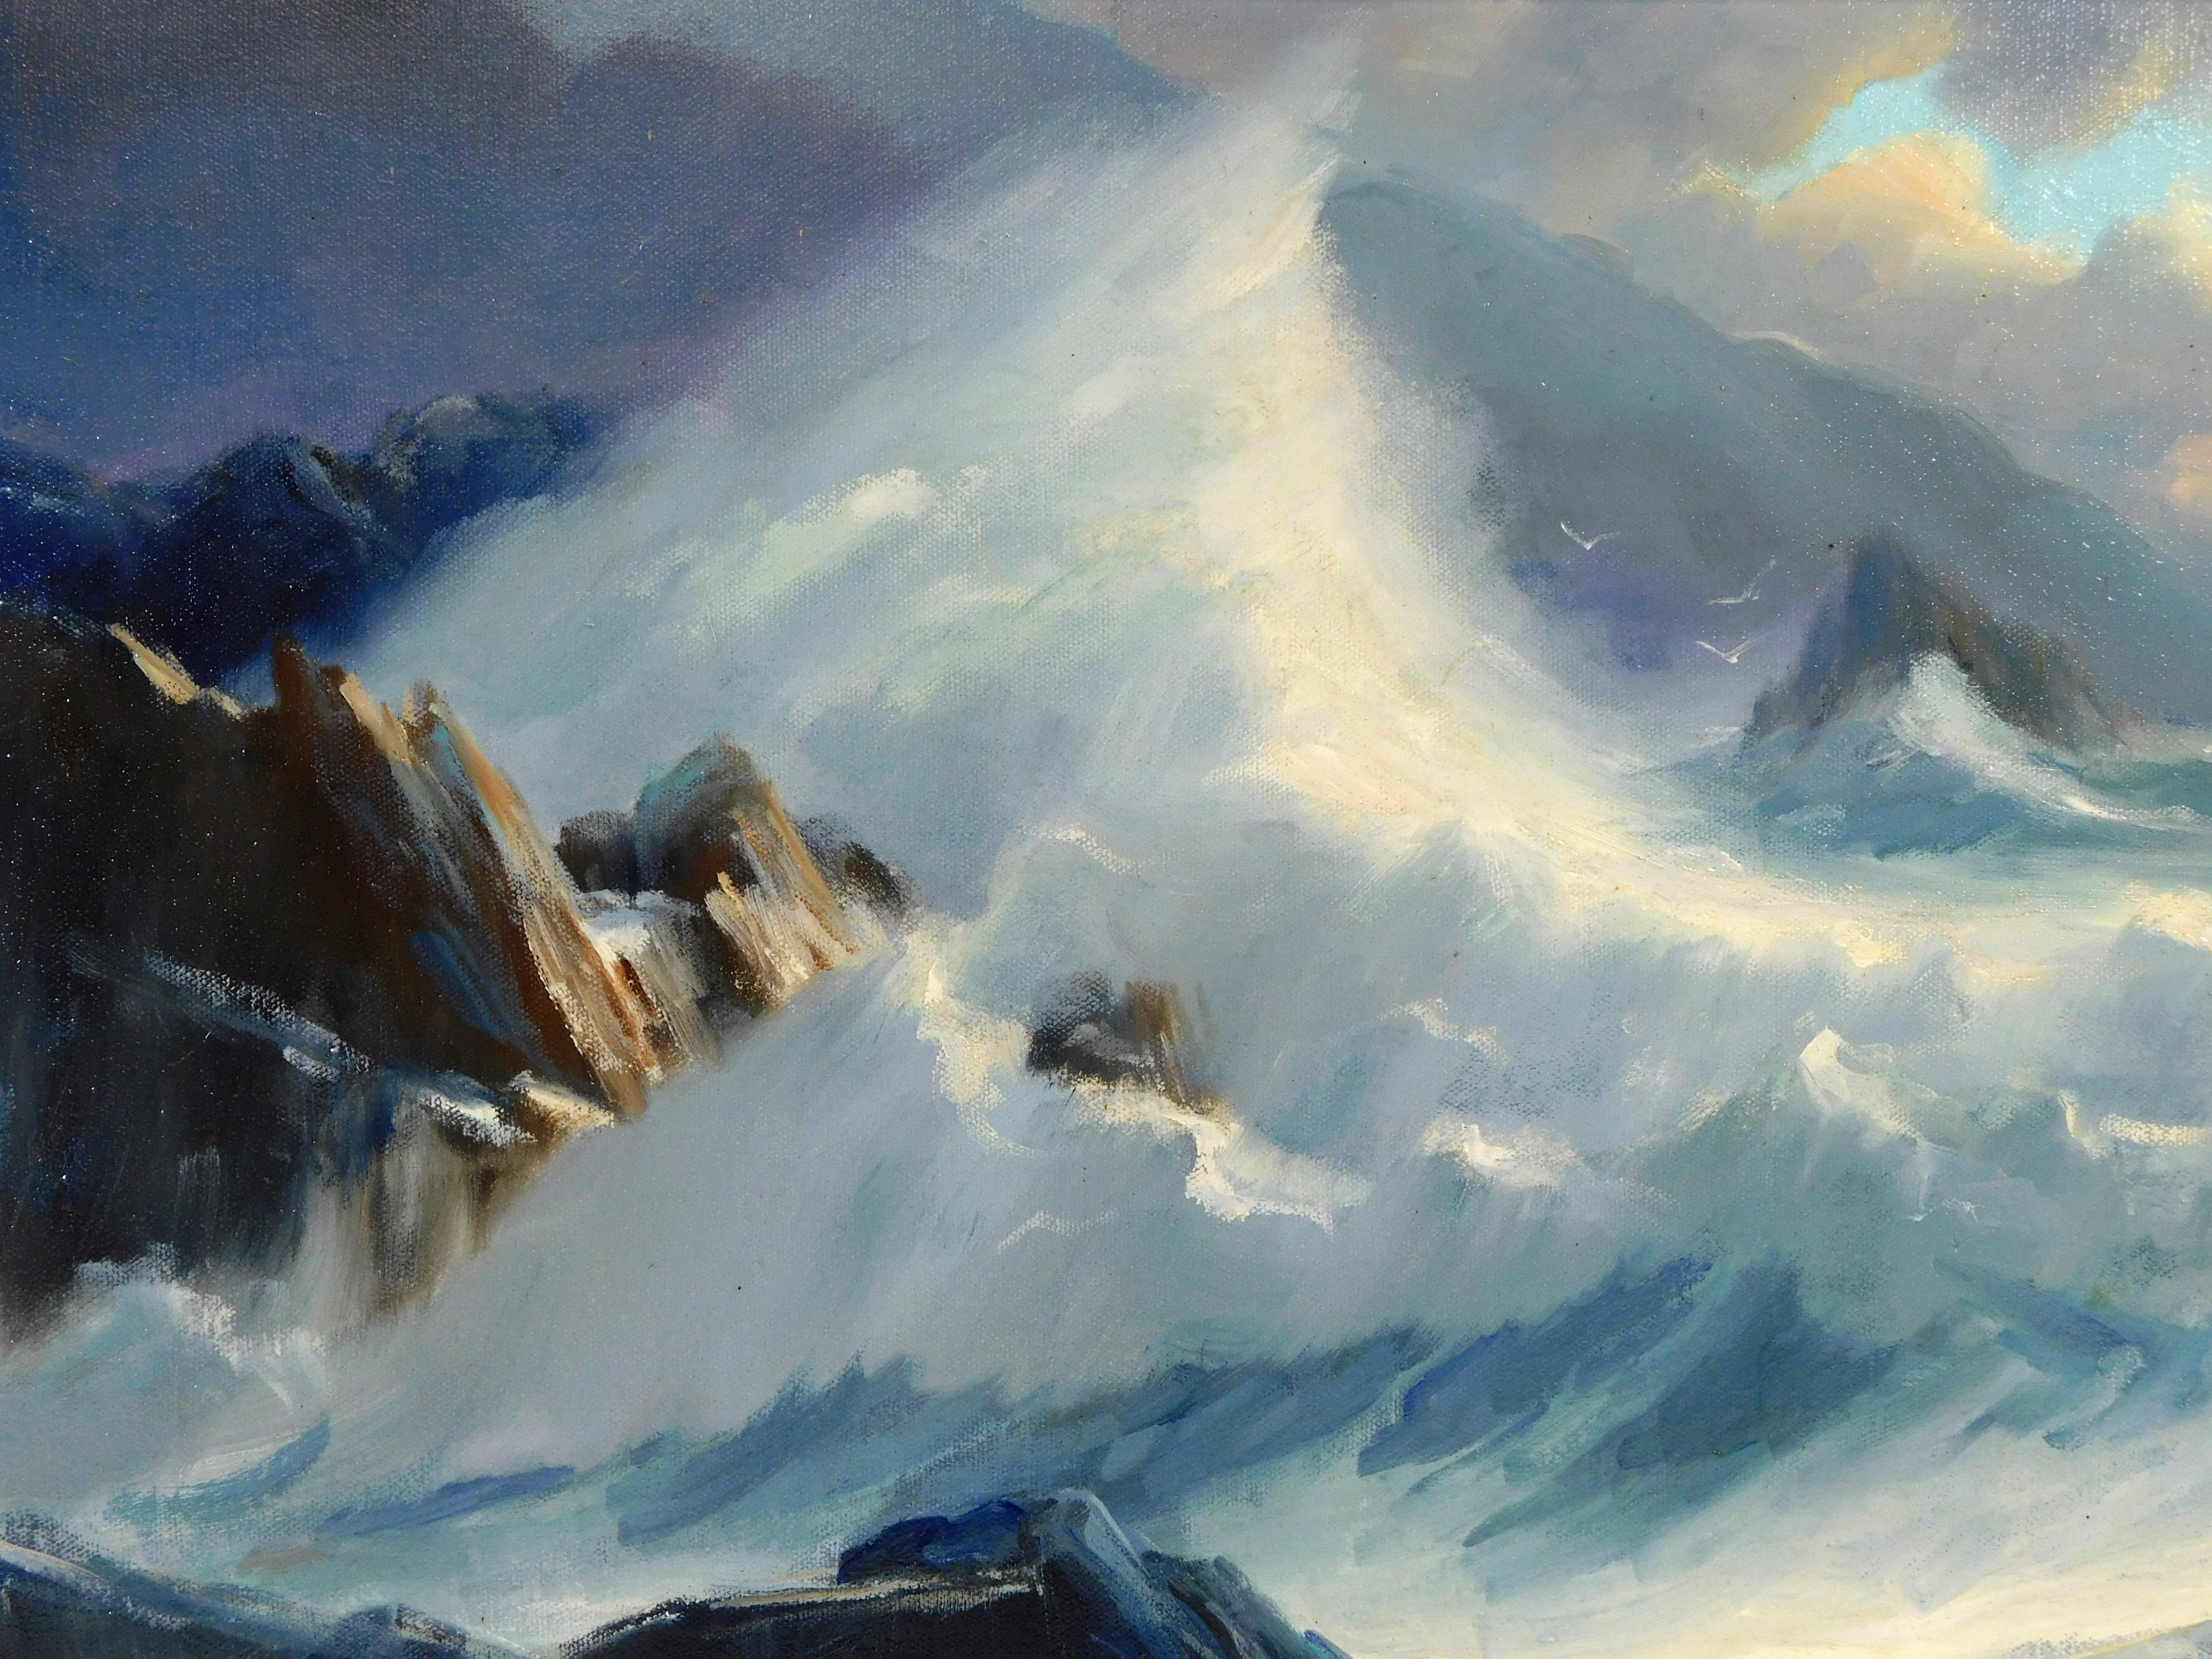 Bruce B. Turner (American, b. 1941), oil on canvas, depicts large waves crashing over jagged rocks, heavy cloud of wave's mist comma..